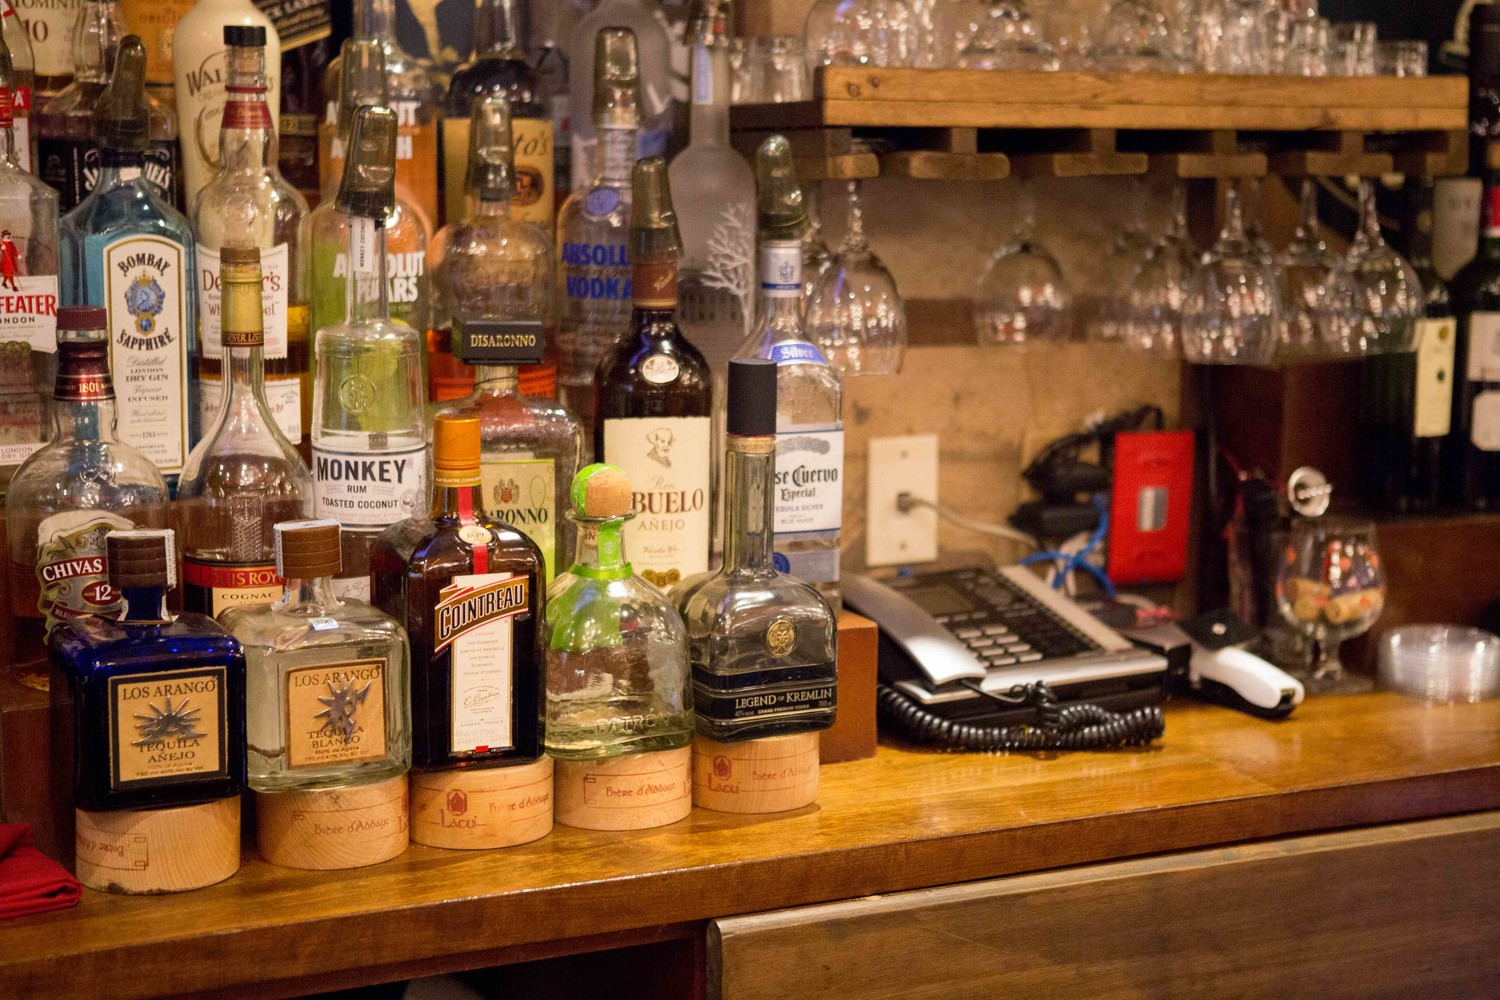 K Grill House in North Riverdale offers an ample alcohol selection to accompany generous cuts of meat. Dmitriy Berezovskiy, the establishment's owner, filed a lawsuit against his landlord, Moses Marx, and the local rabbinical council alleging they tried to drive him out of business — because, among other things, his wife isn't Jewish.